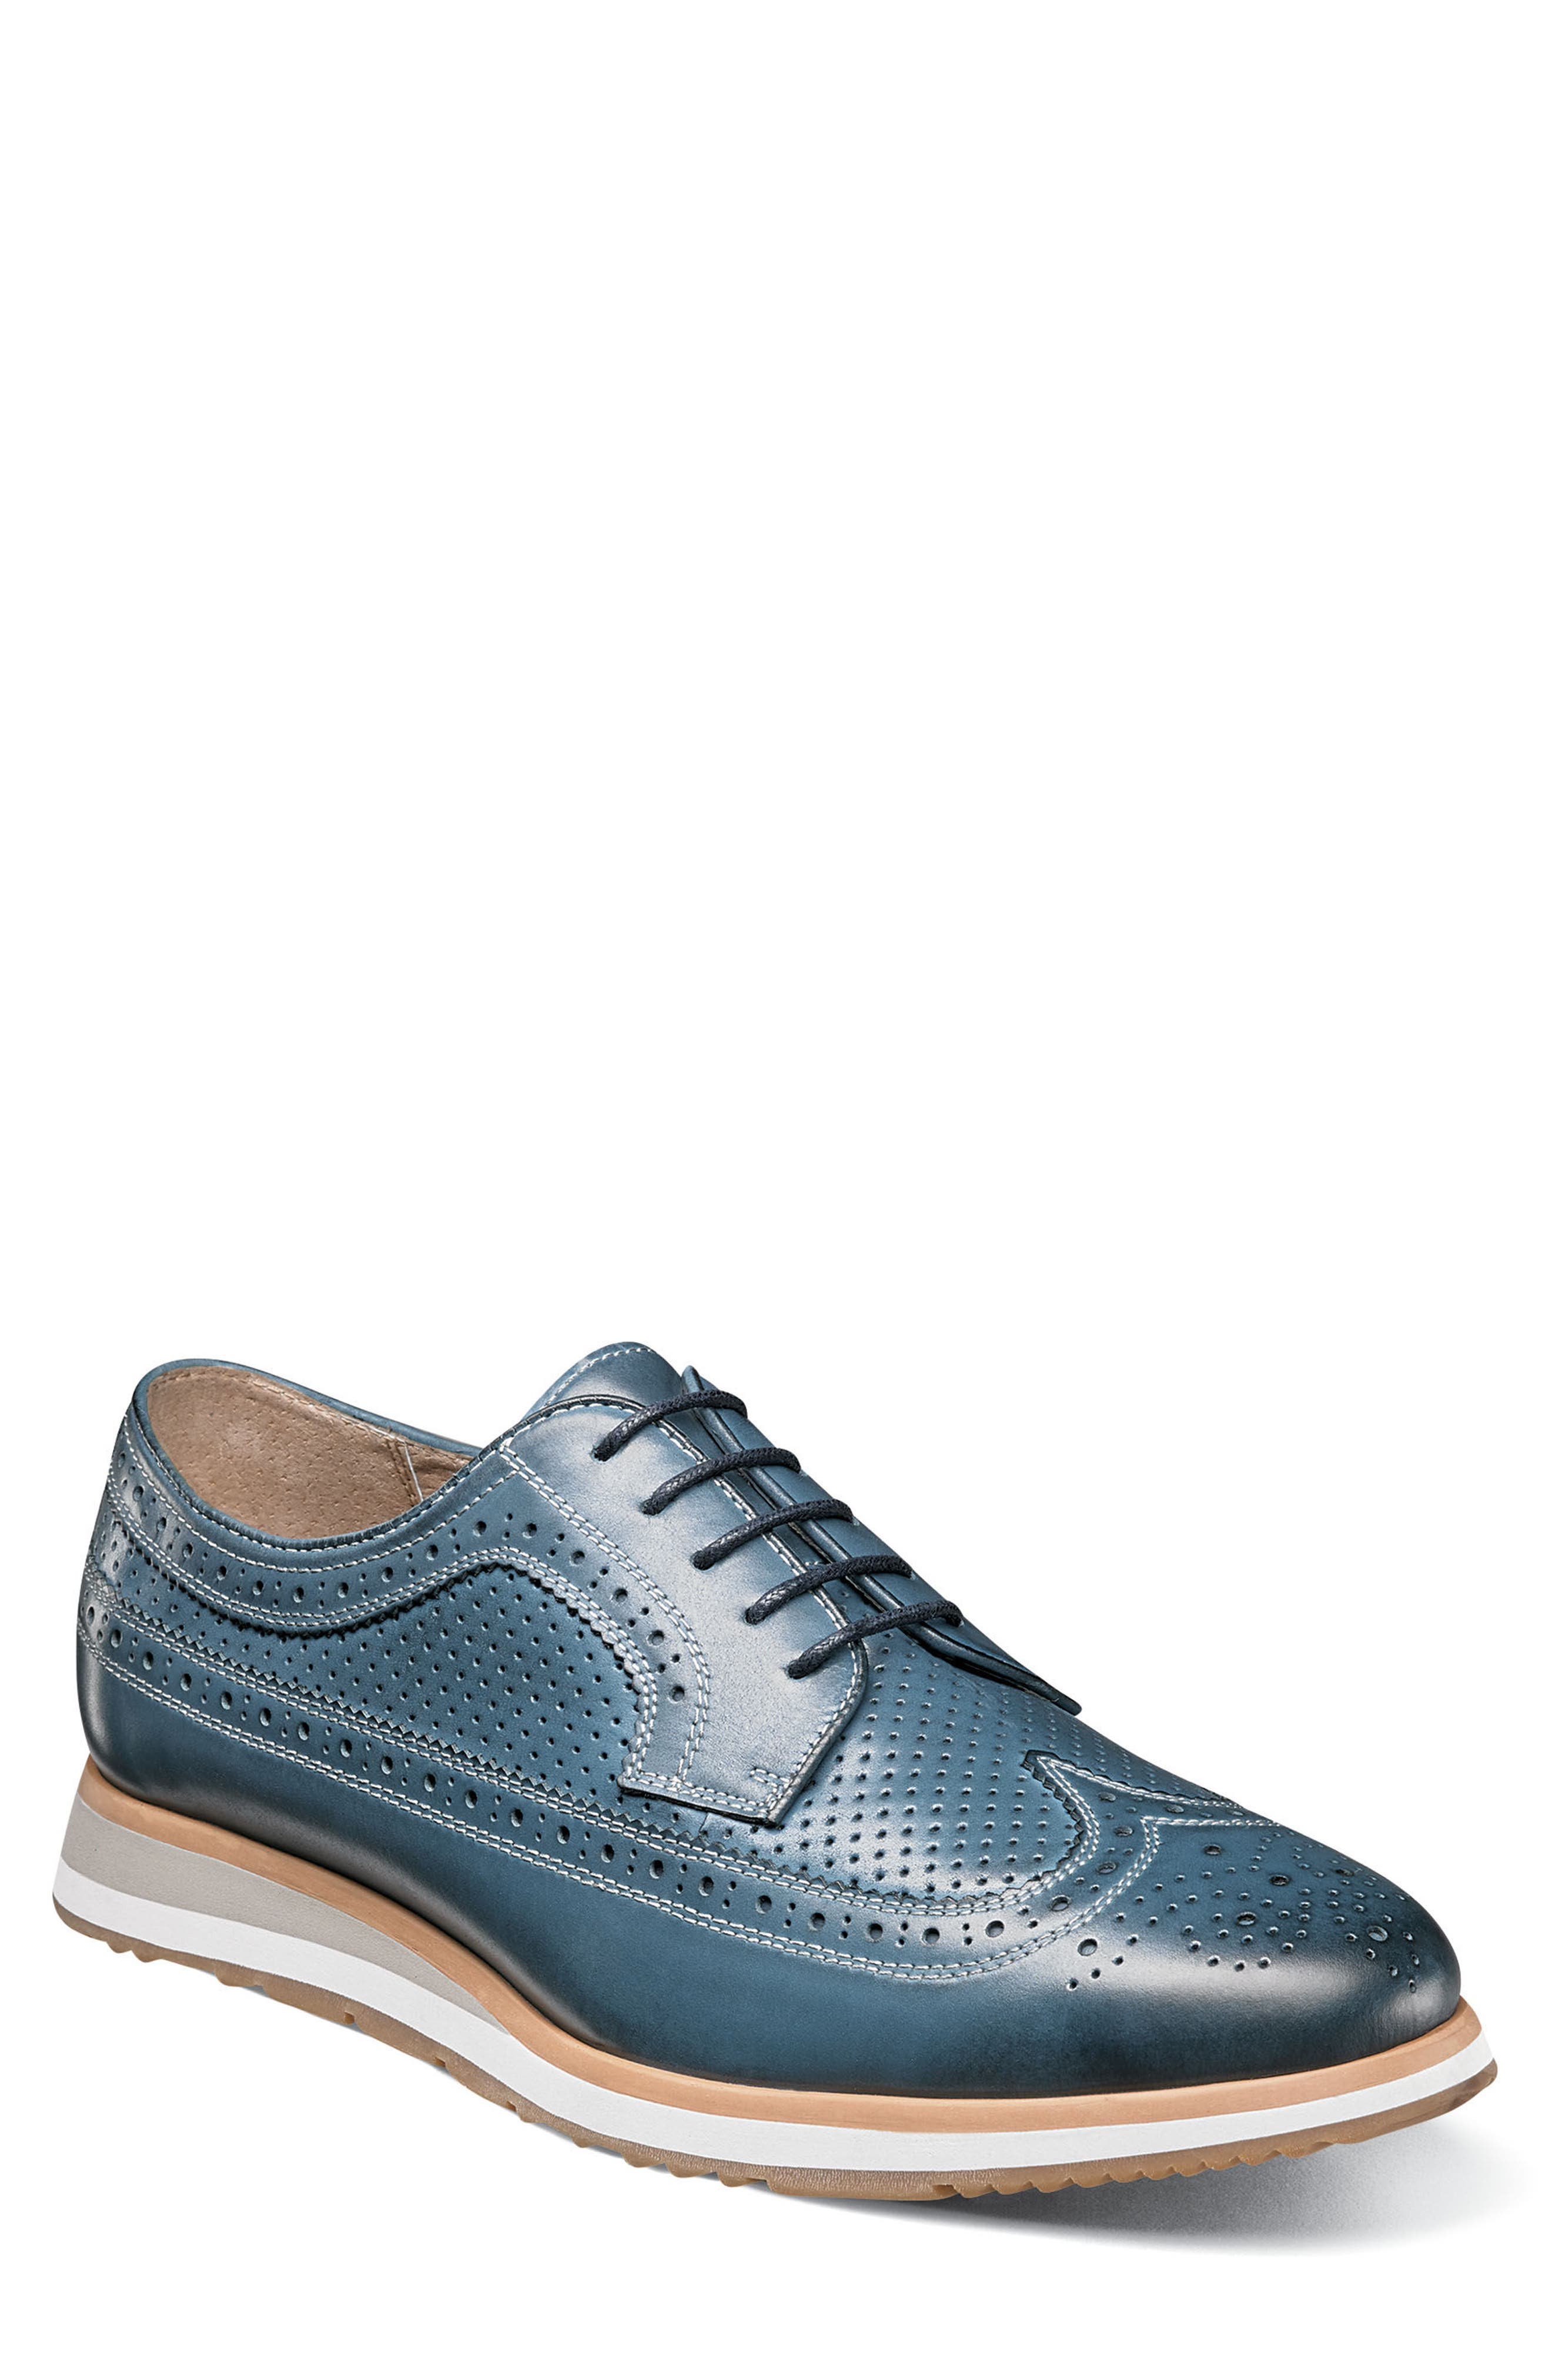 Limited Flux Perforated Wingtip Derby,                         Main,                         color, Indigo Leather